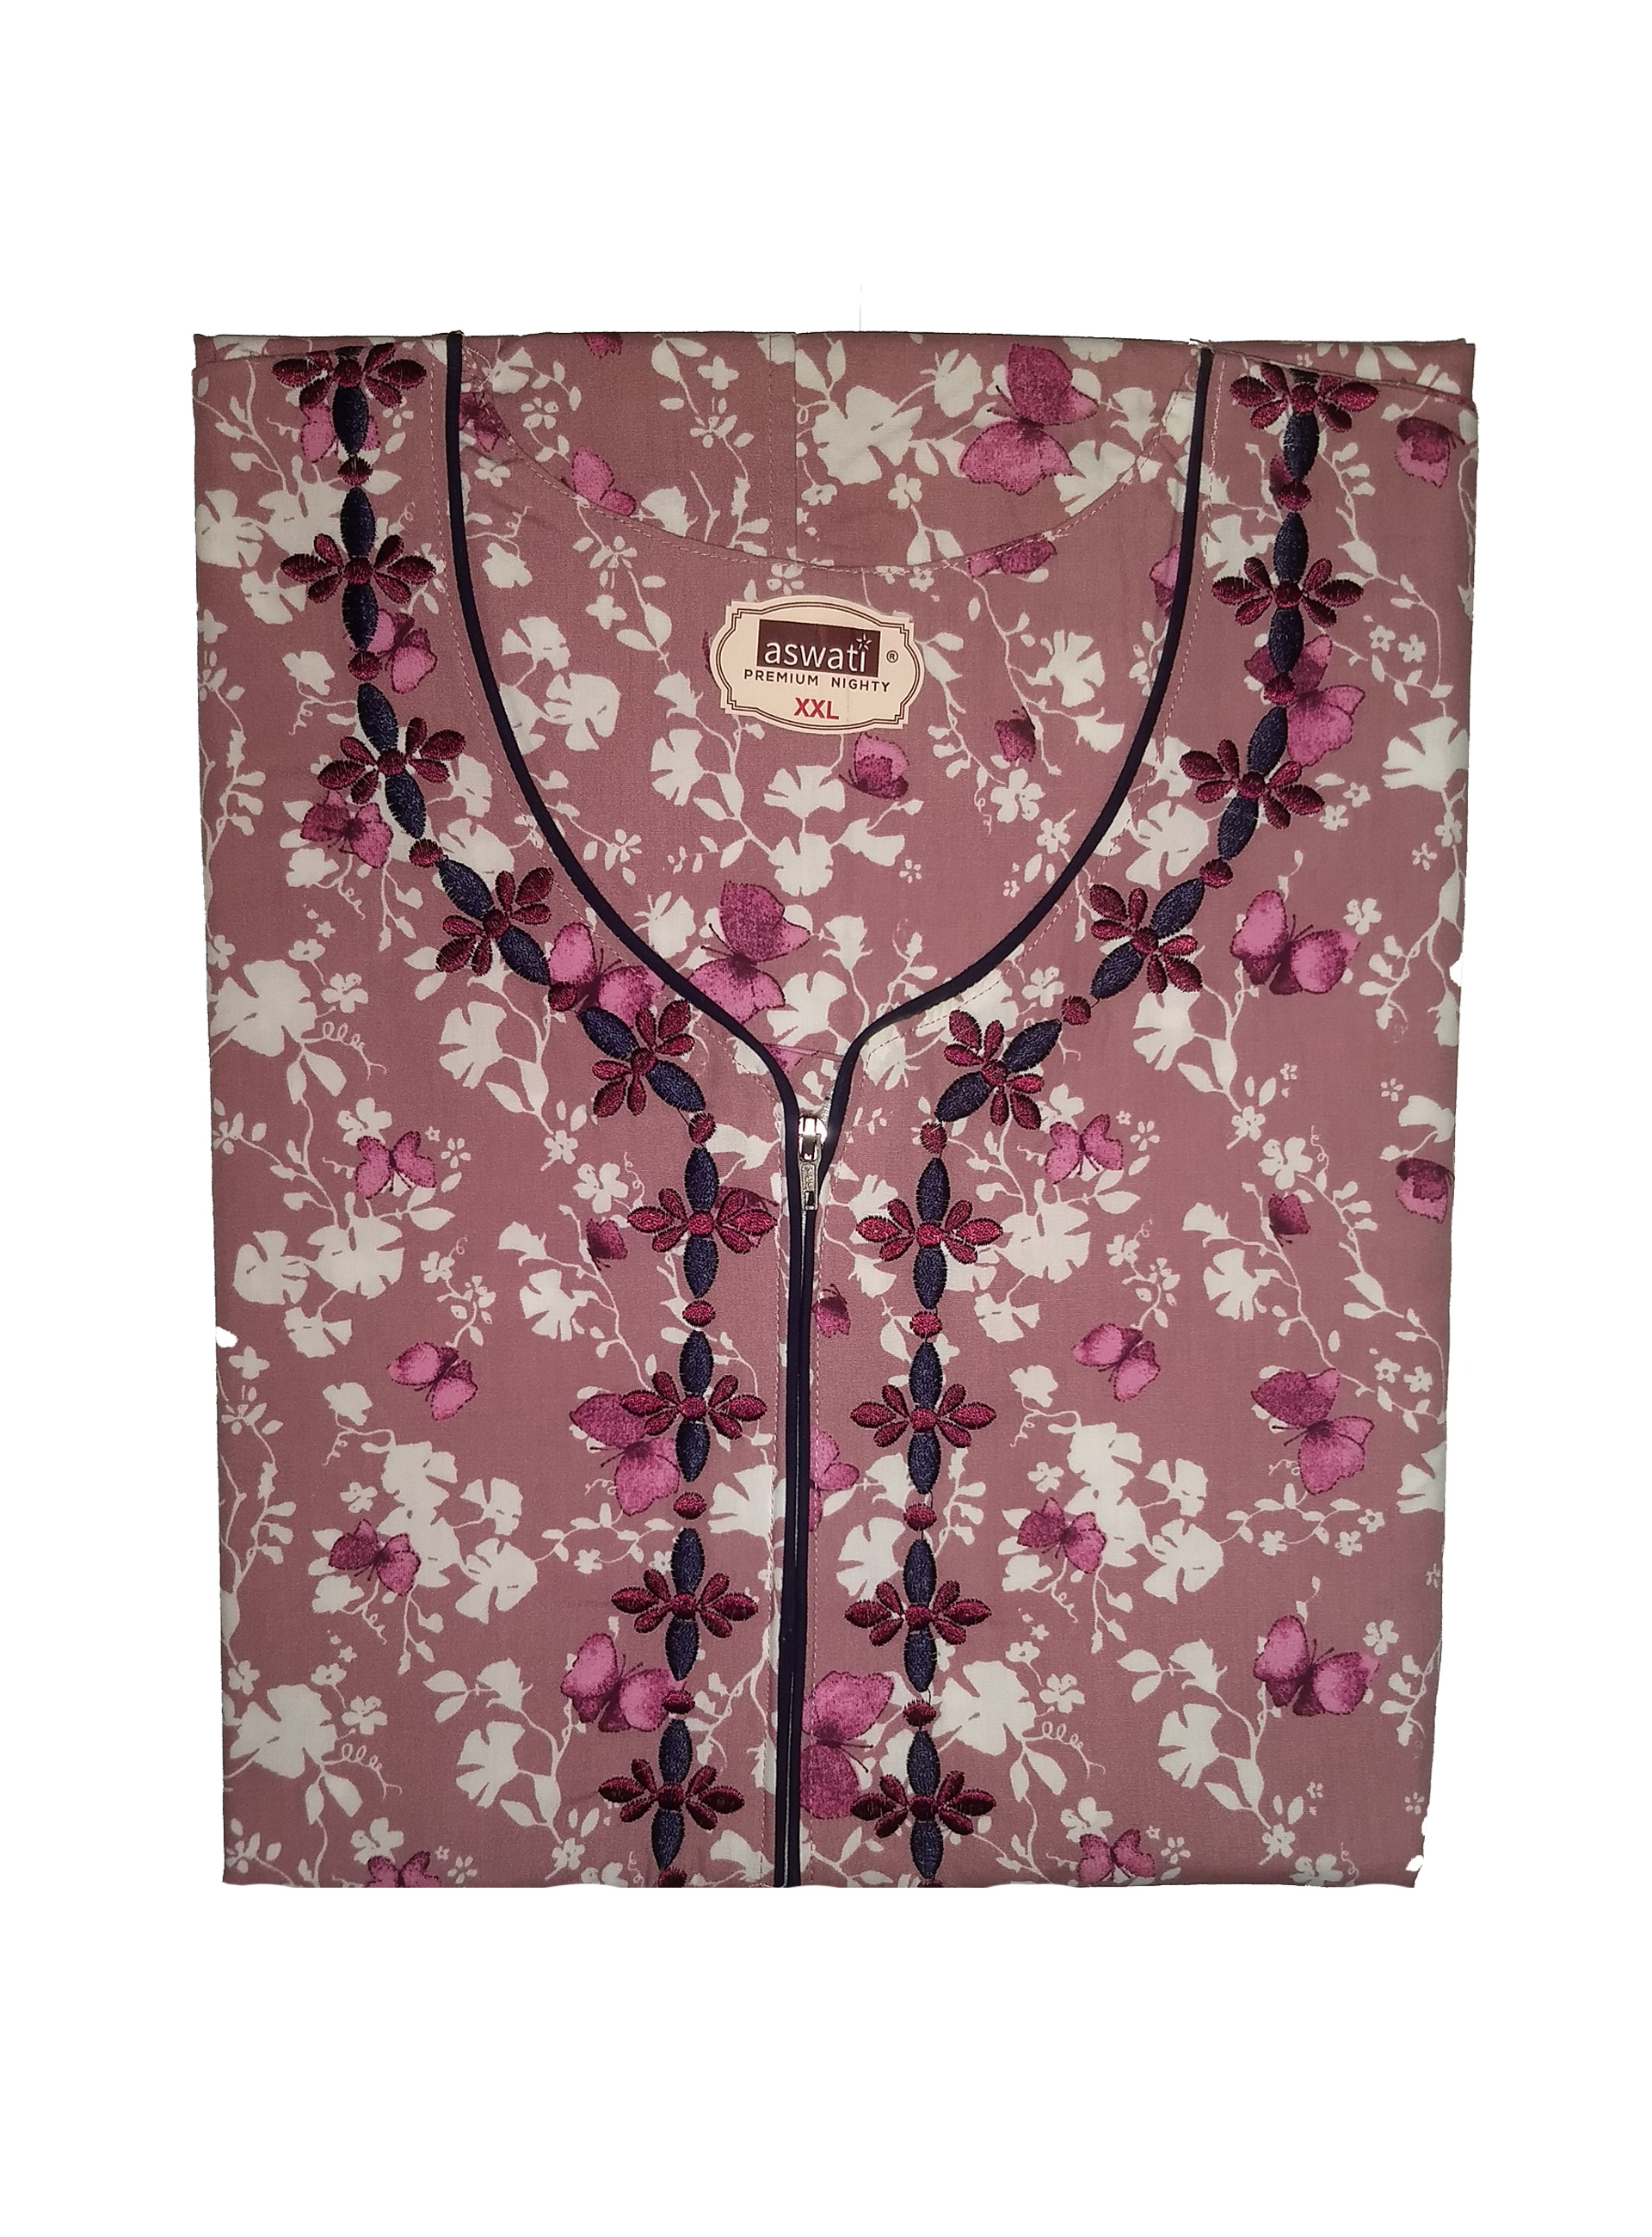 Premium Nighty (XXL) - Pink With Floral Embroidery